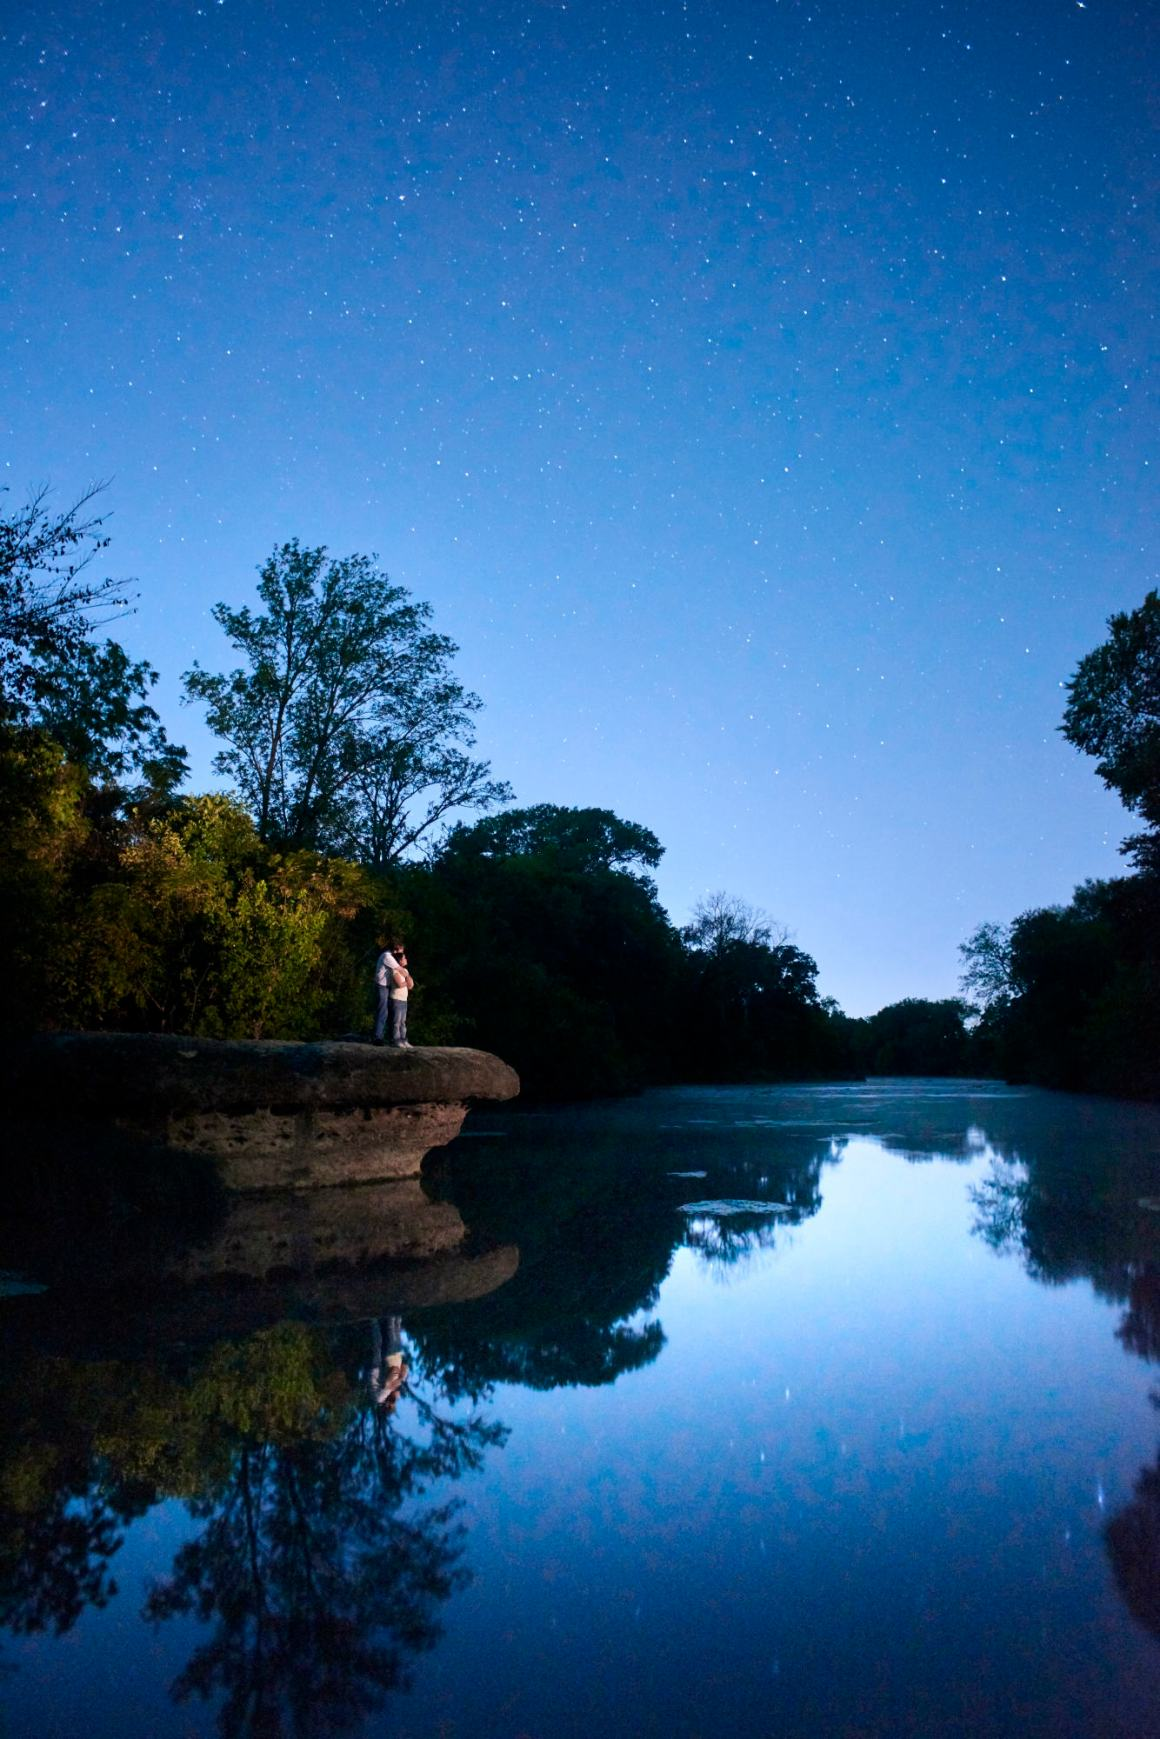 Jonah Engagement Photos on the San Gabriel River under the stars.